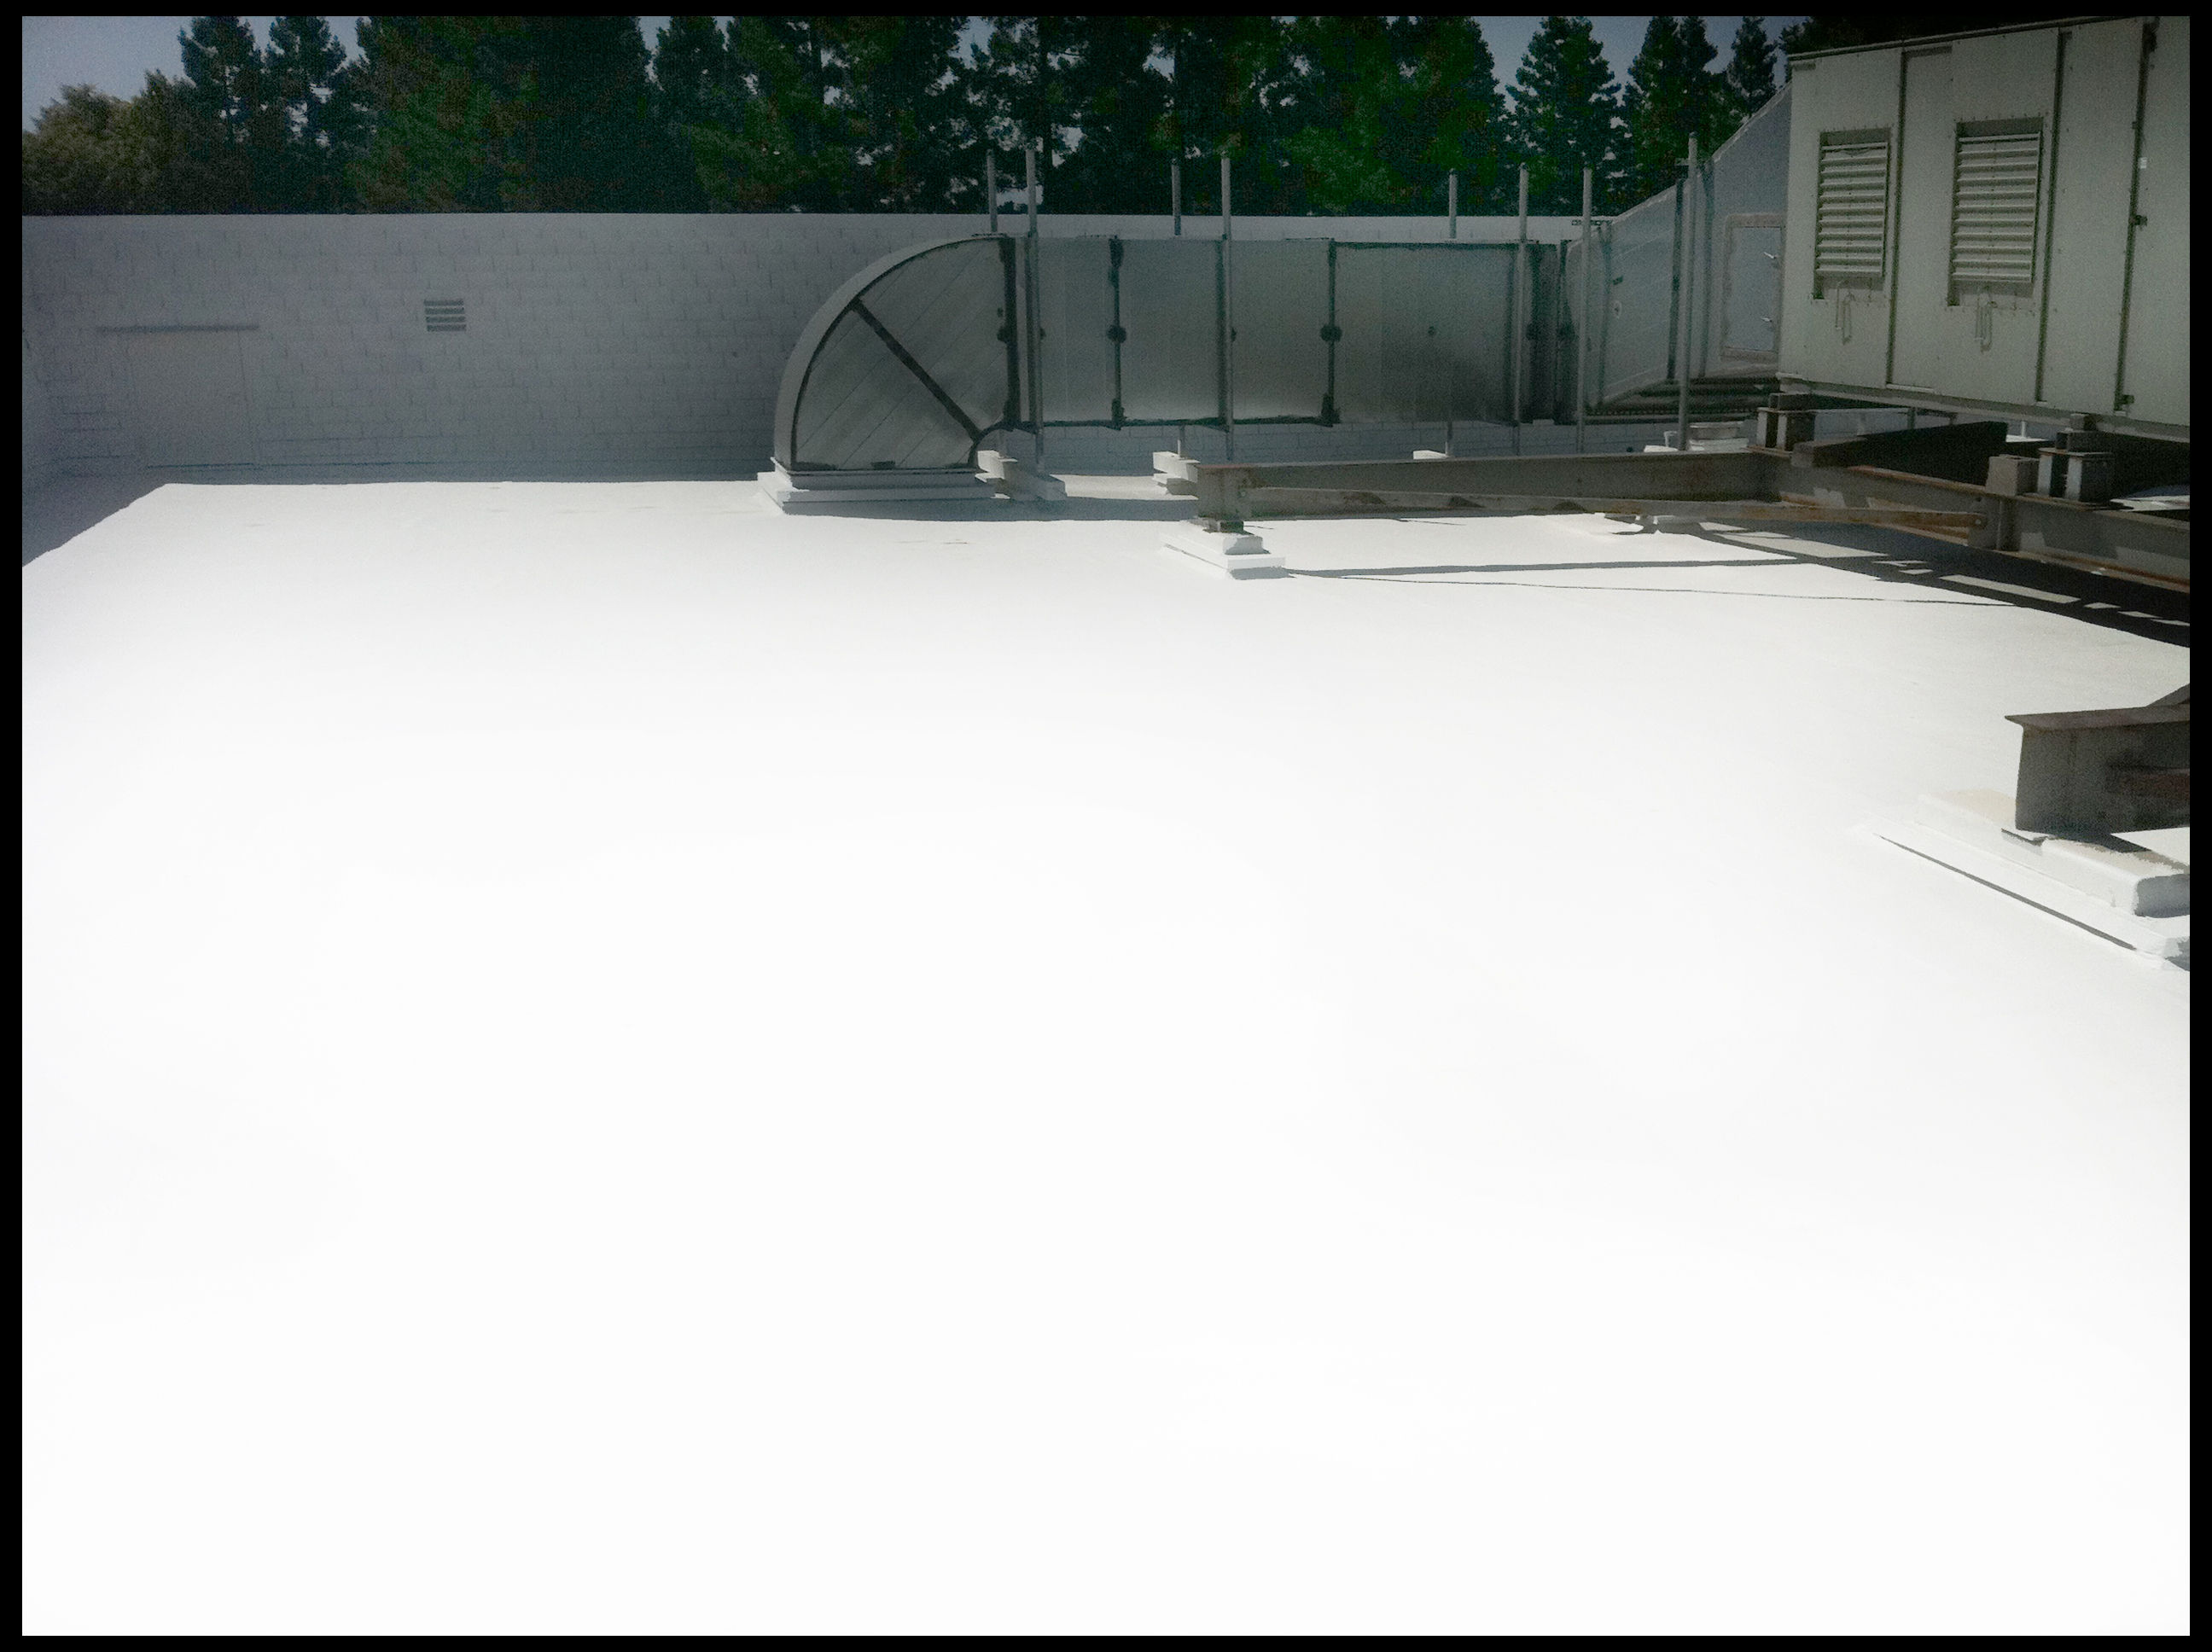 While TPO Single Ply Membrane Roofing Has Been Around For Over 20 Years Now  In The United States, TPO Roof Replacement Is Now In Full Swing For These  ...